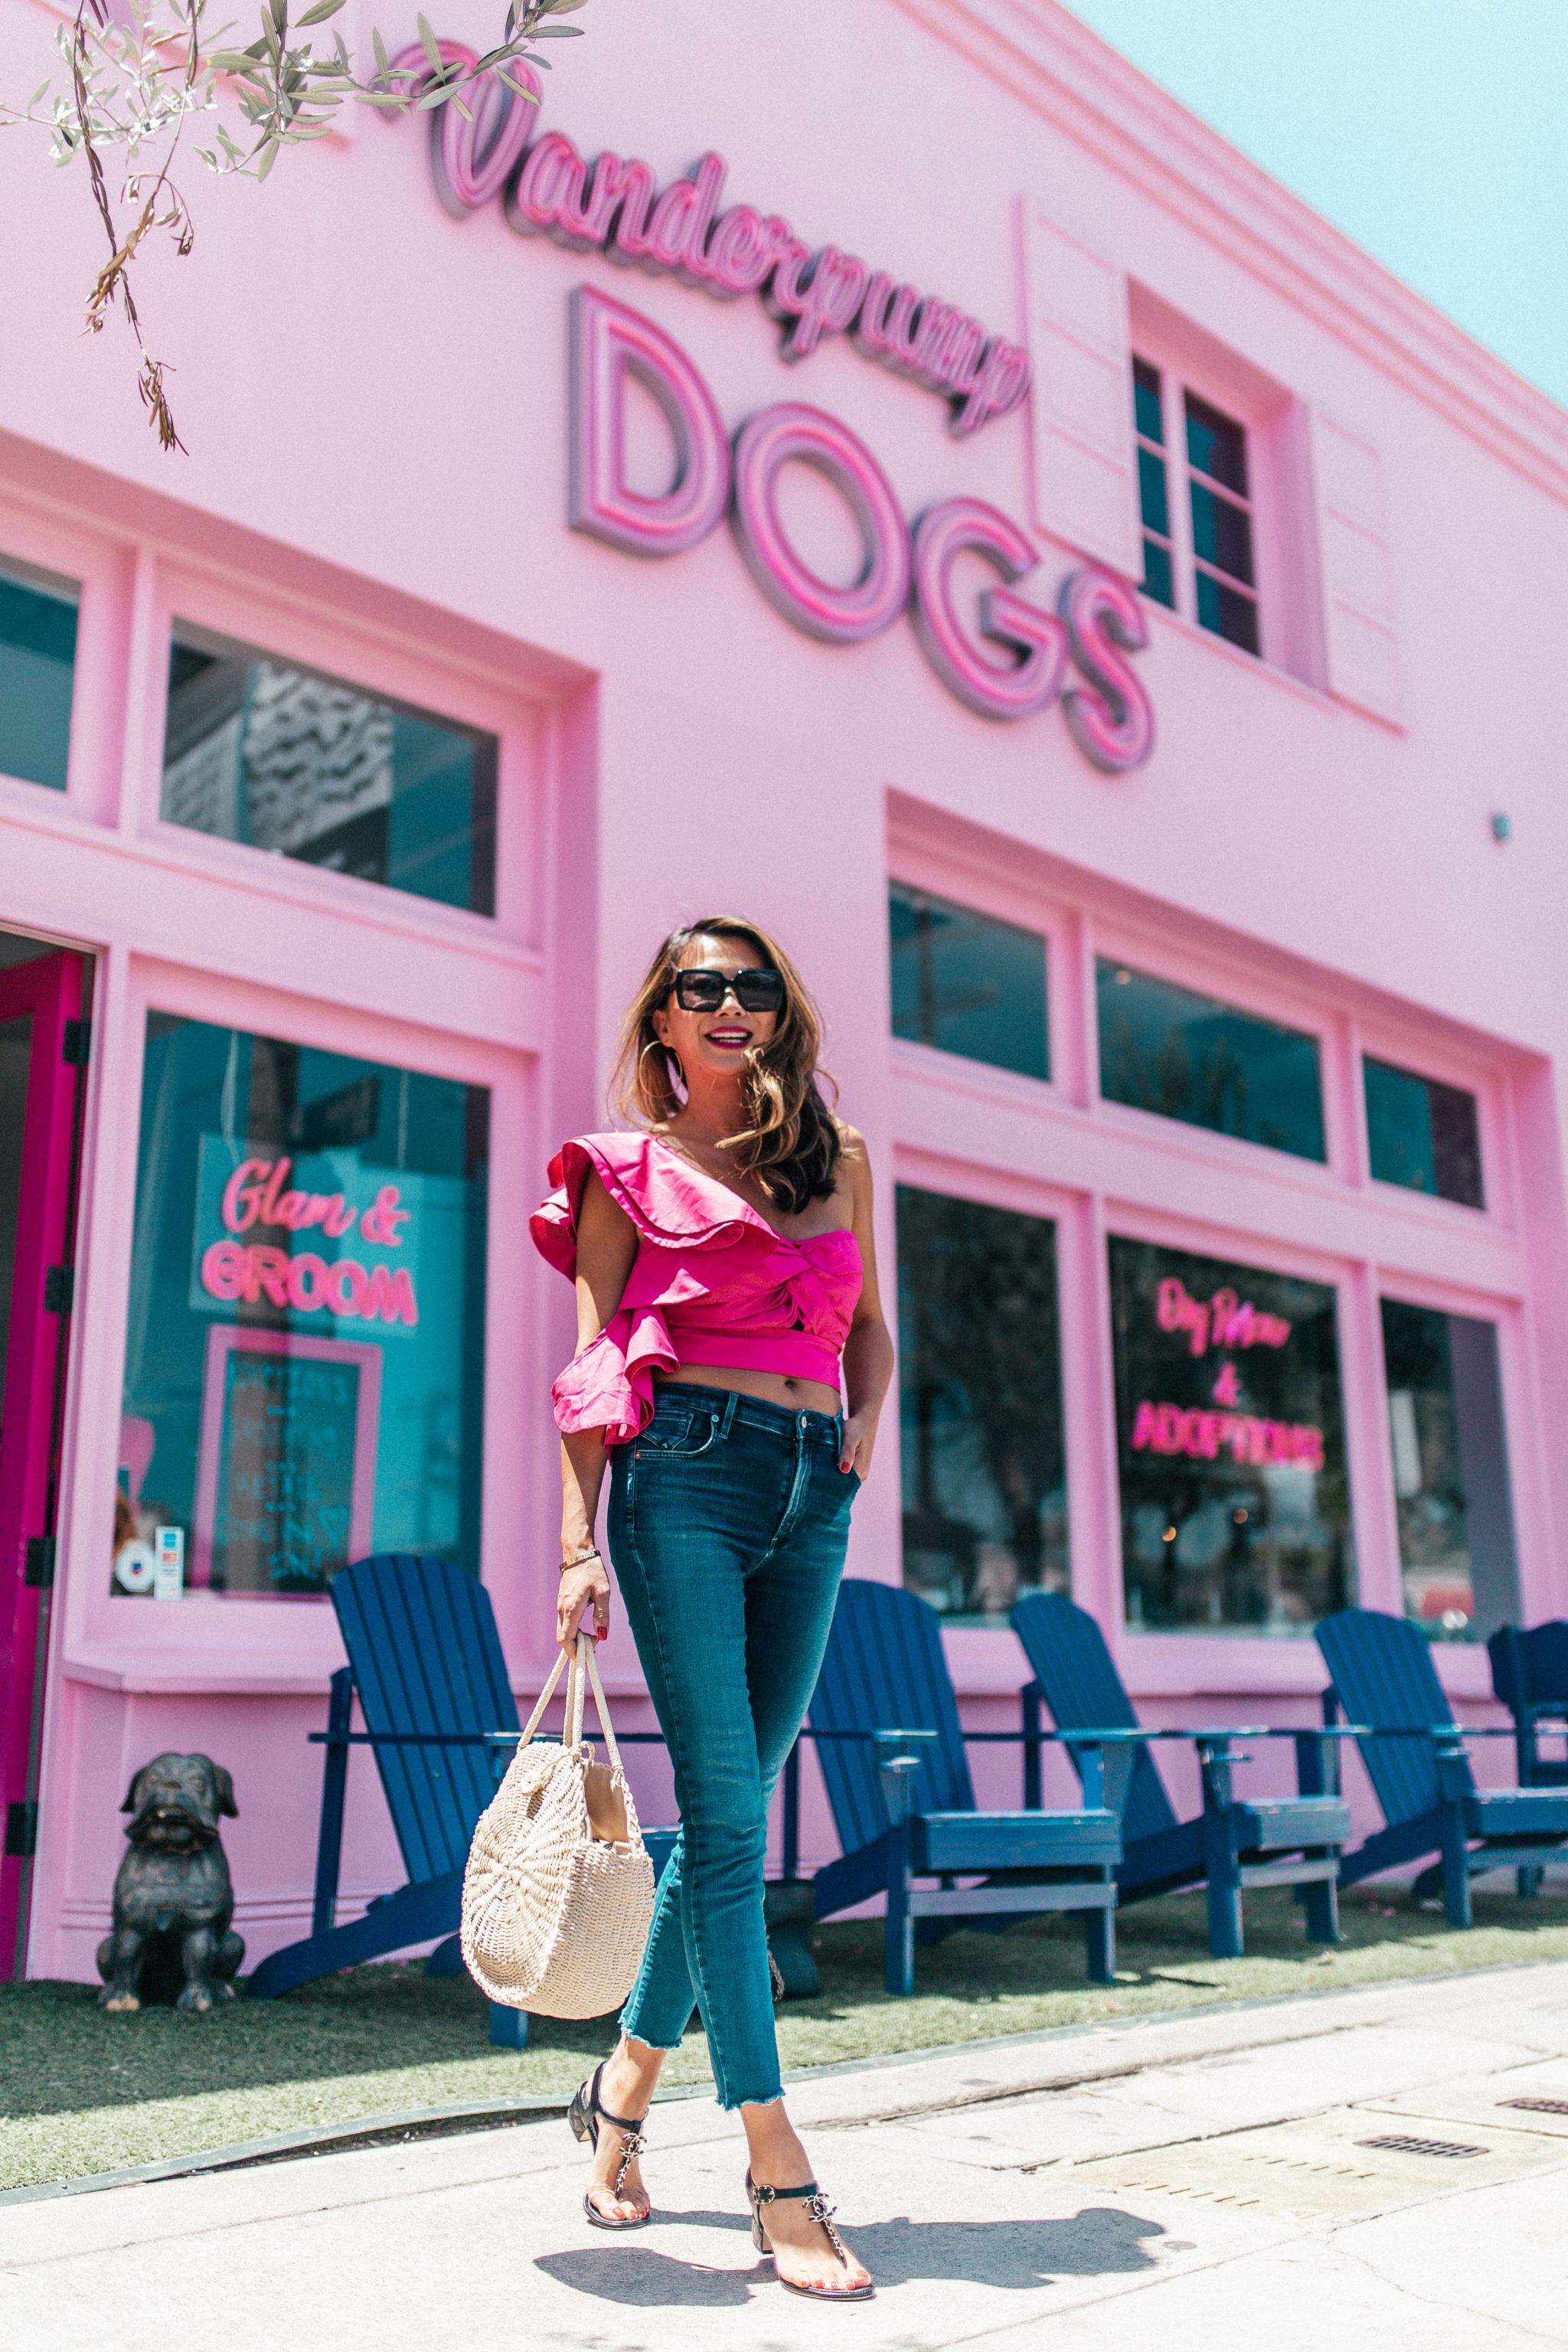 LA Blogger, chicago travel blogger, Vanderpump dogs, Ruffle pink Shirt, Shopbop Memory Lane Top, Best Summer Streetstyle in LA, Jennifer Worman